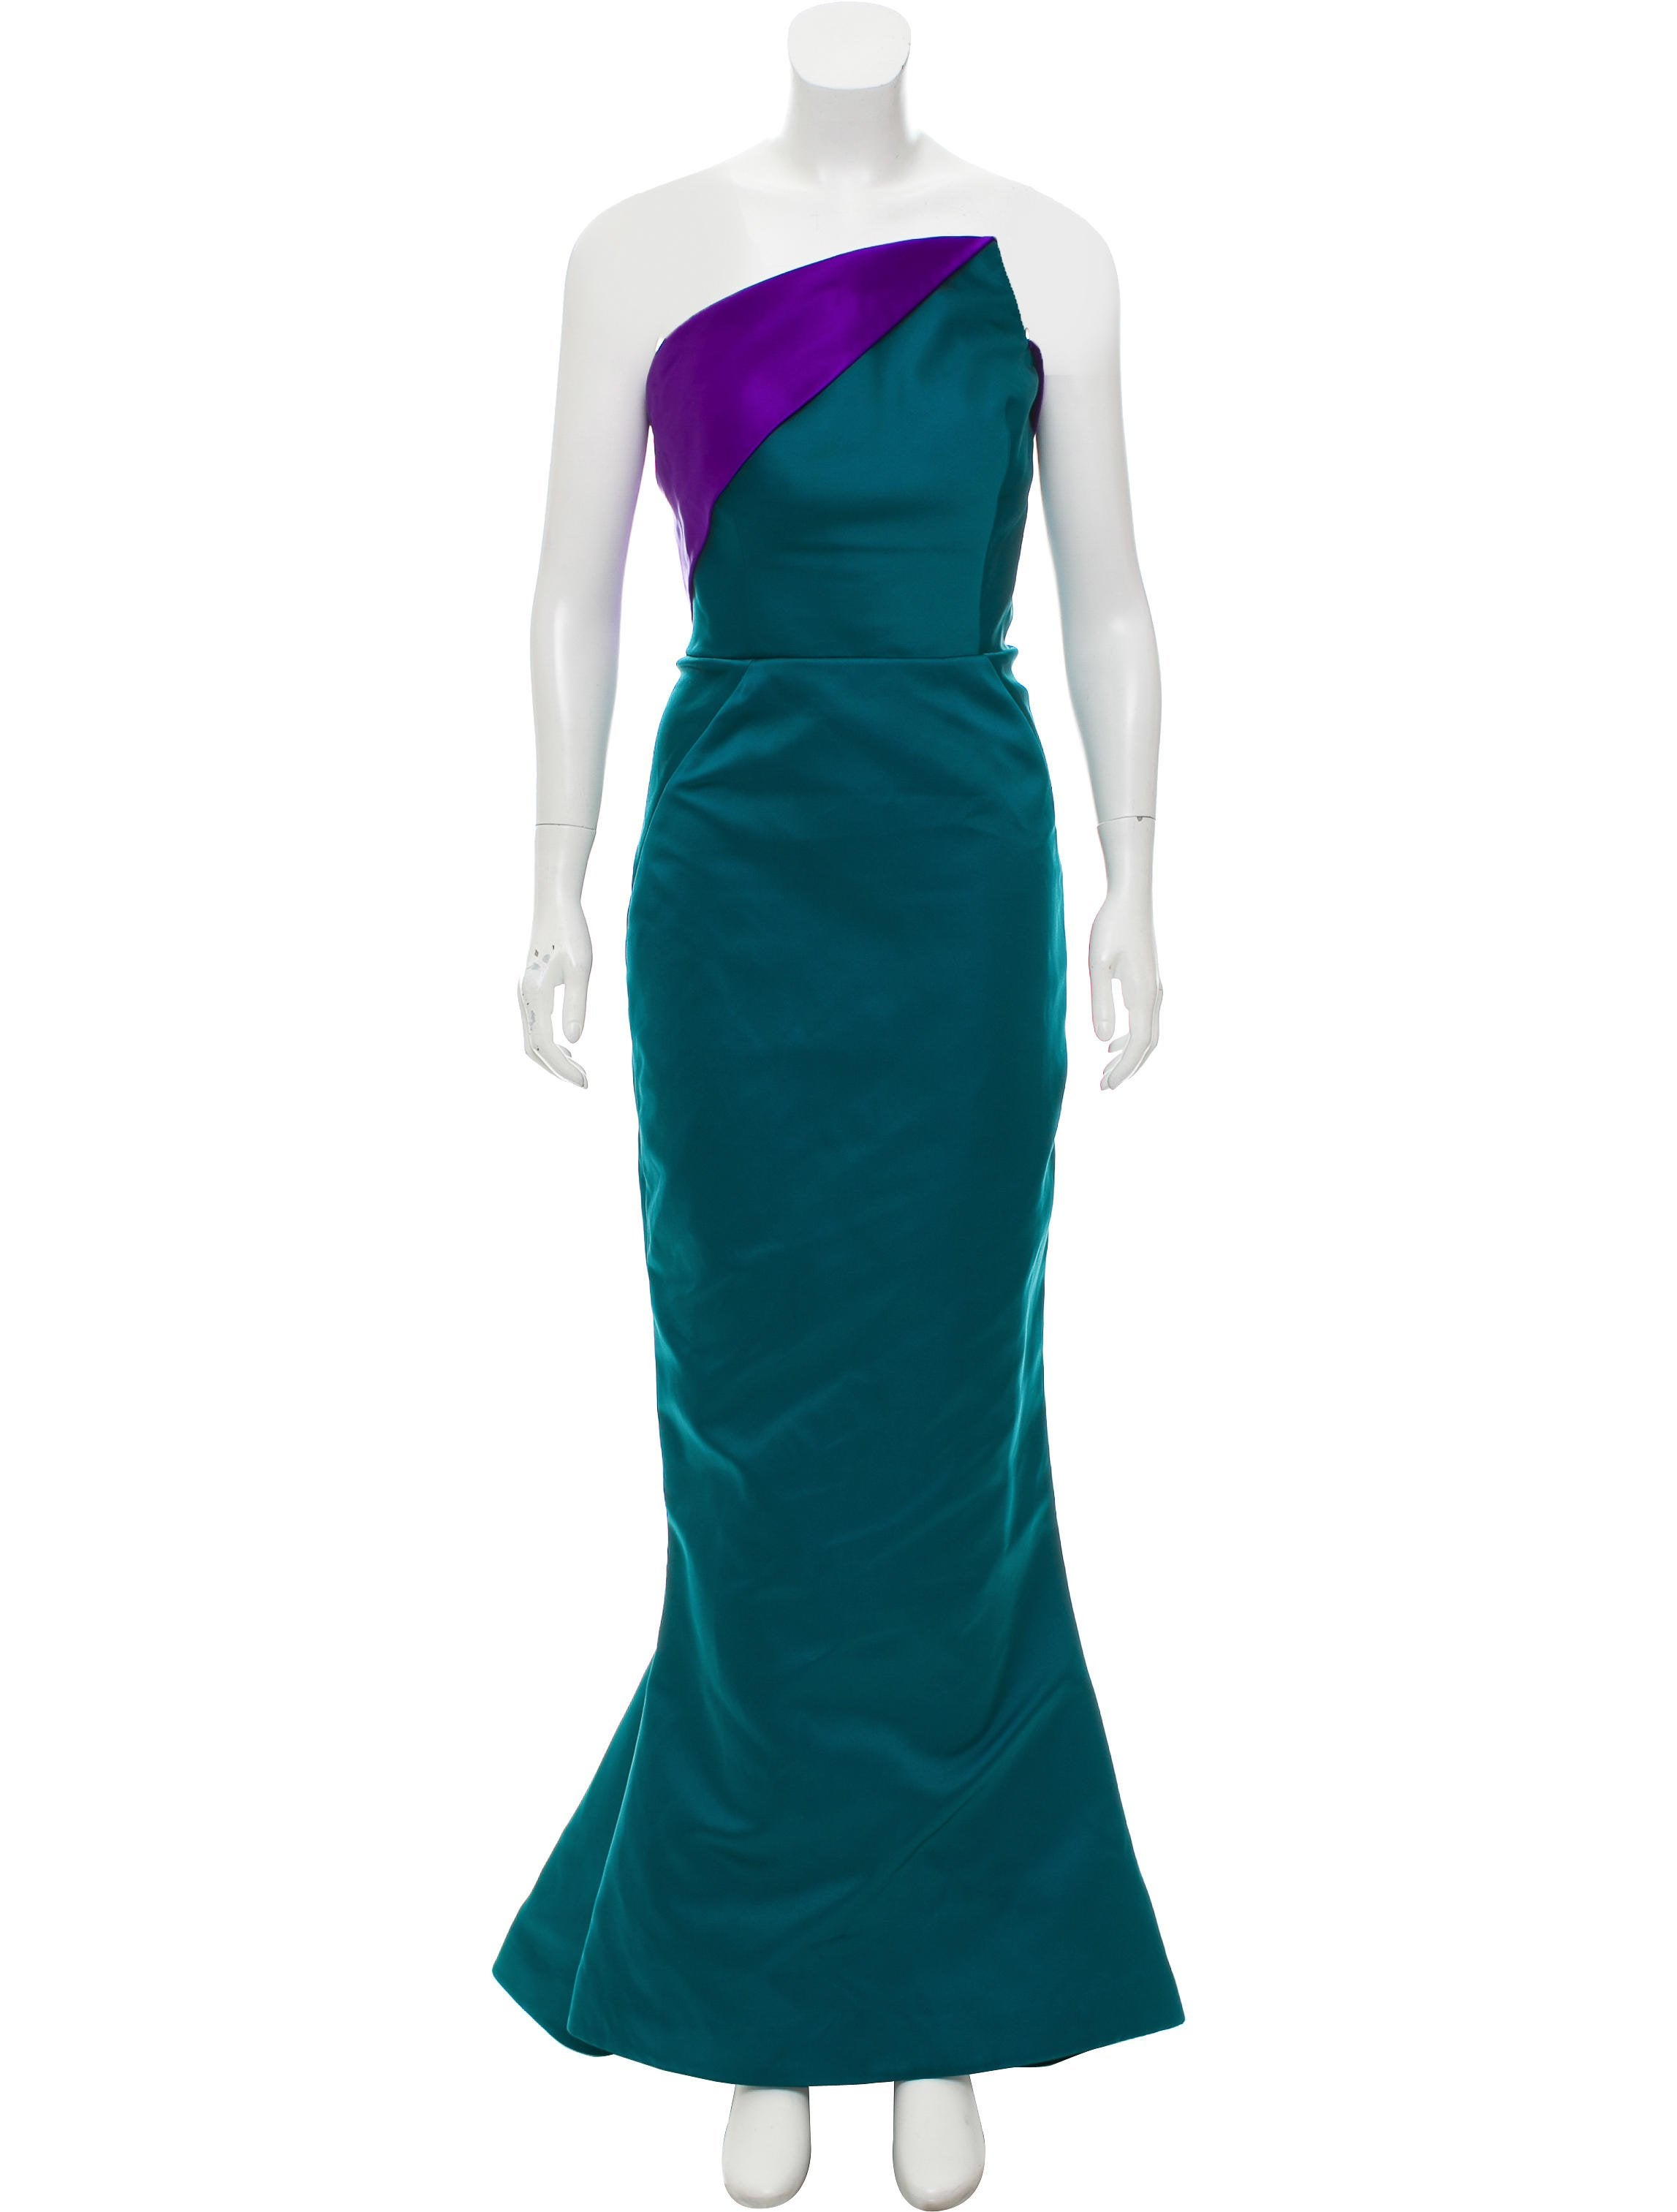 Zac Posen Strapless Evening Gown - Clothing - ZAC27297   The RealReal